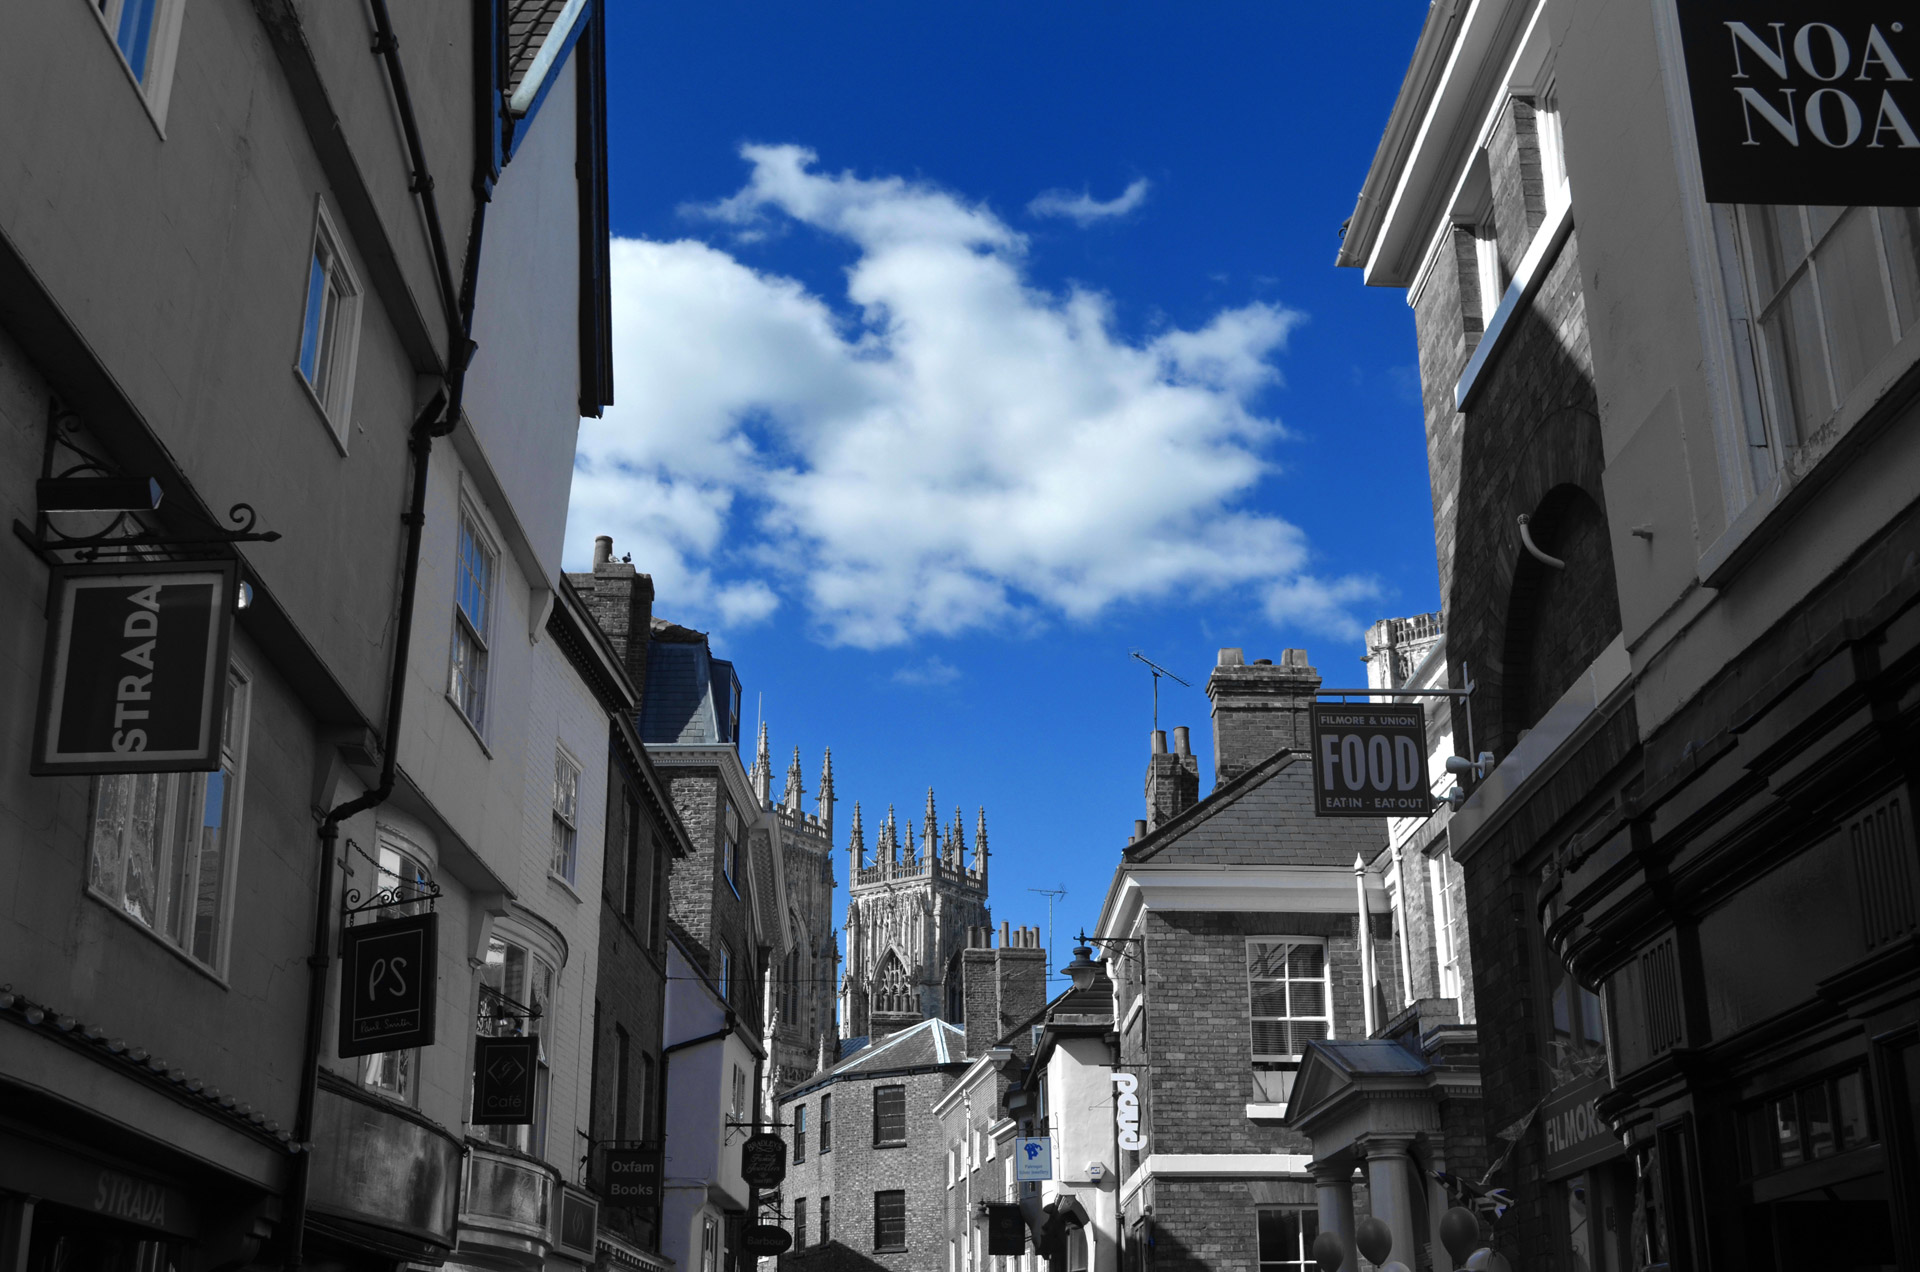 Planning a York photography trip